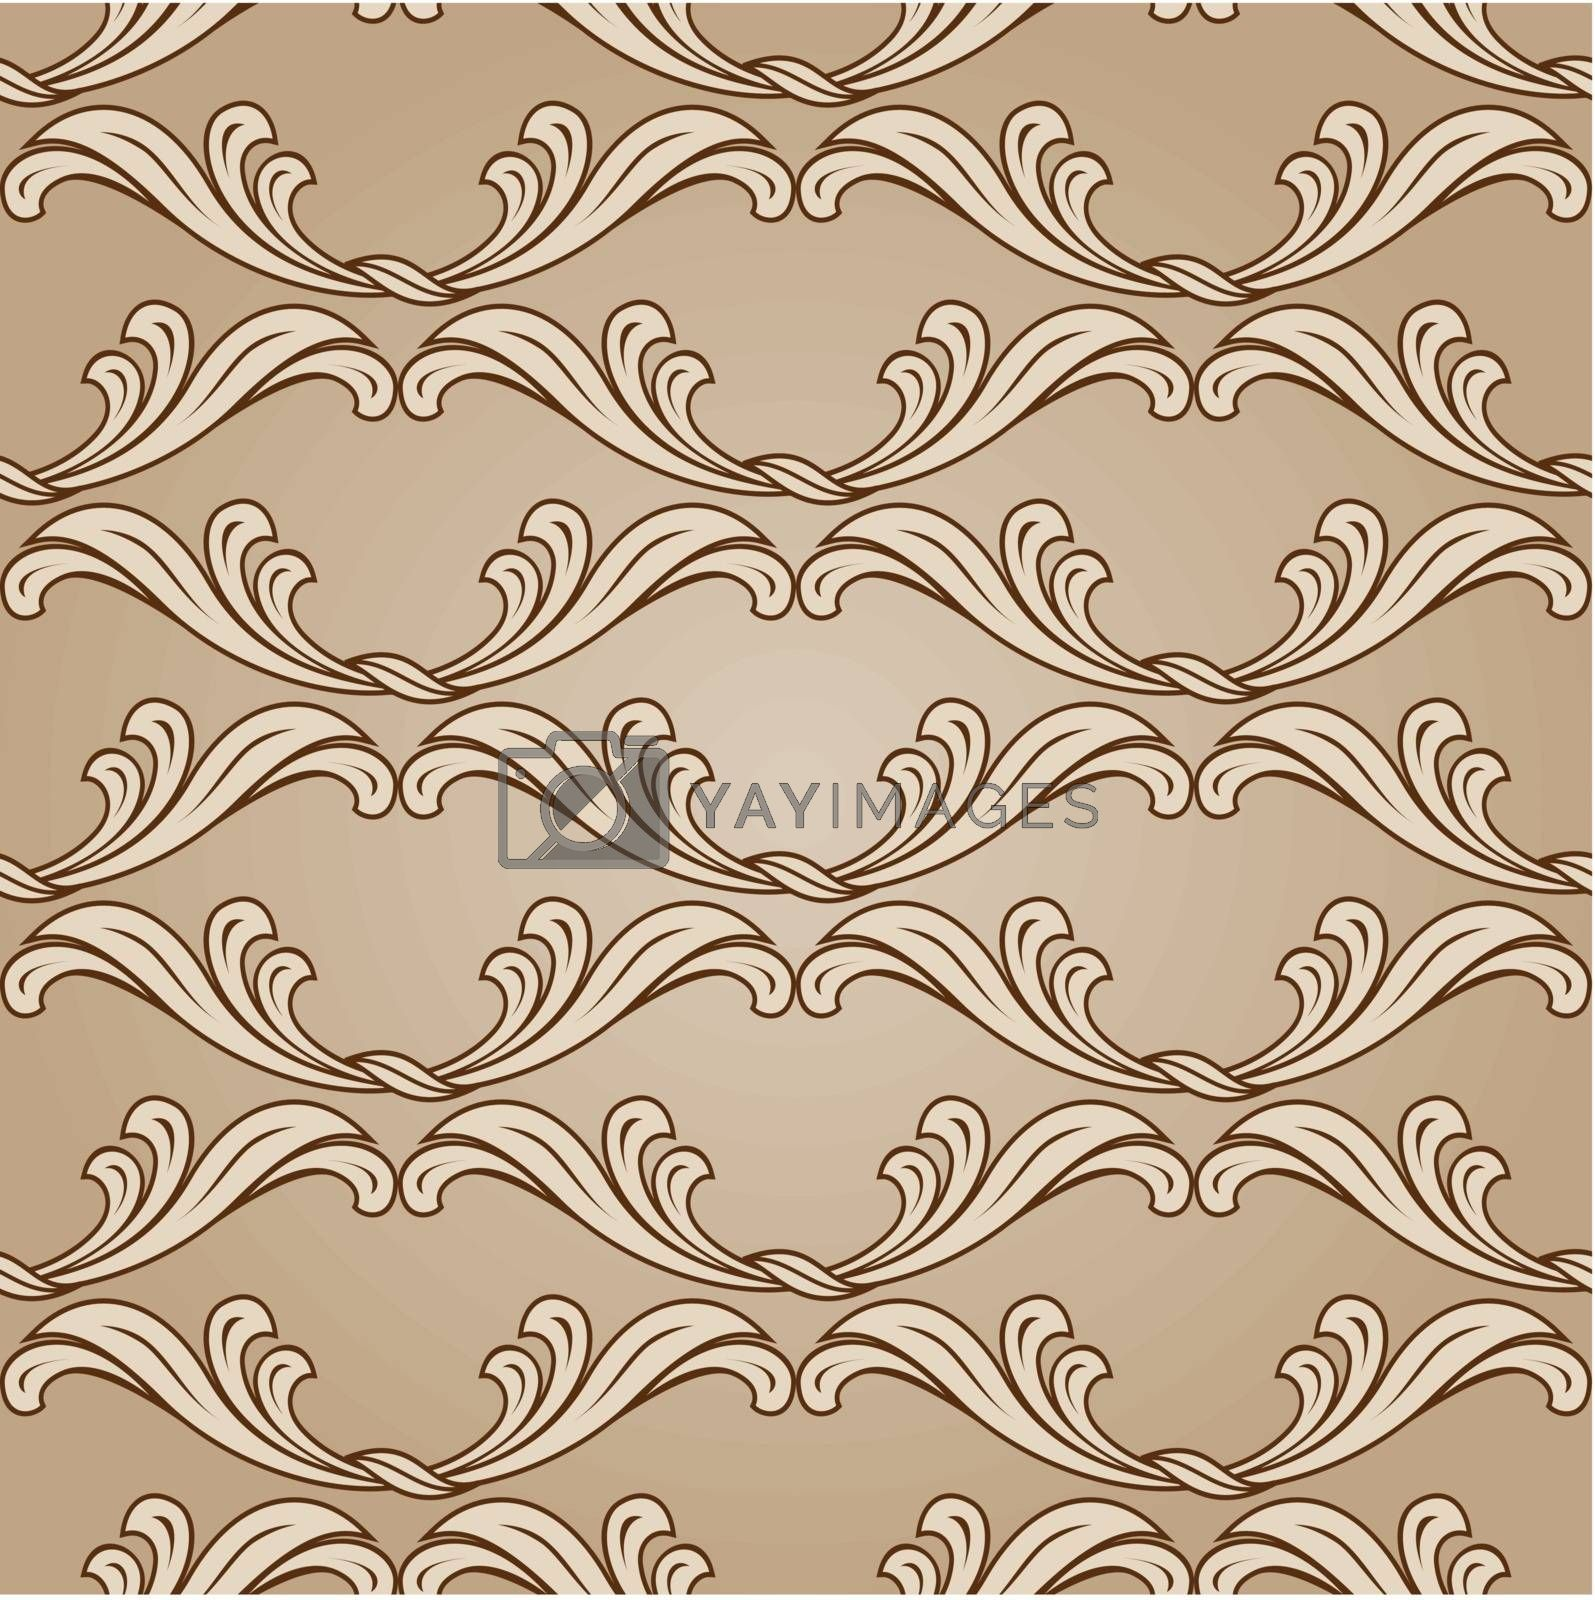 Royalty free image of Floral background by dvarg